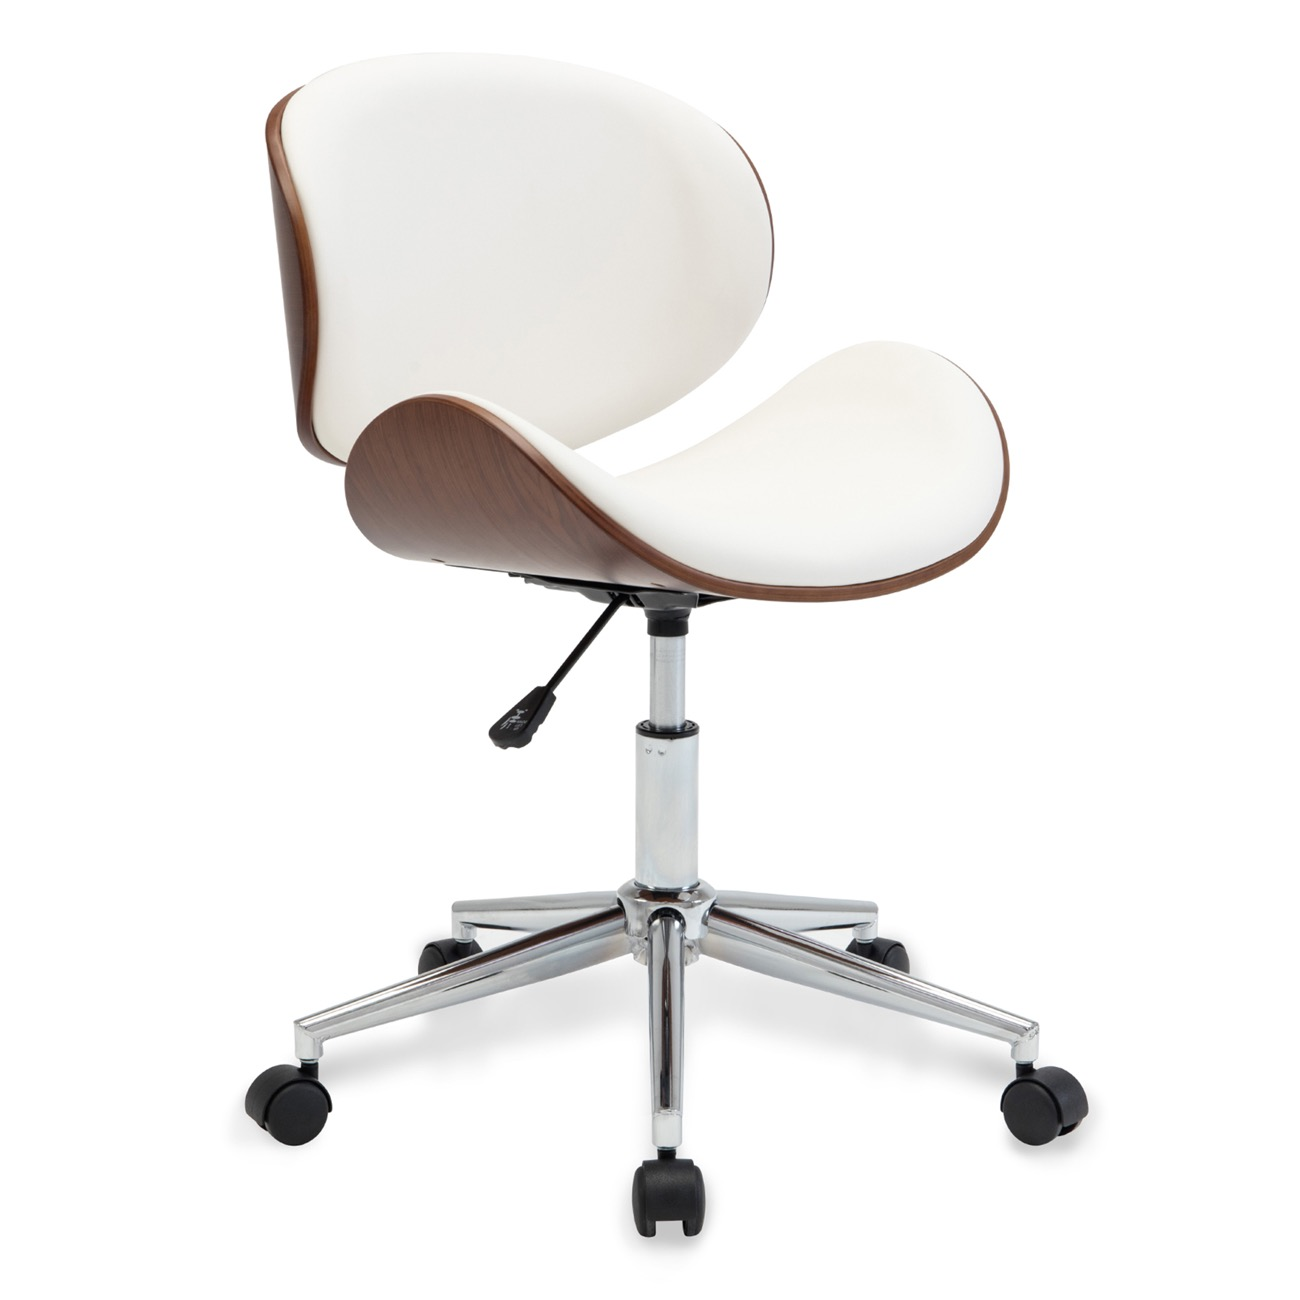 Details About Mid Century Contemporary Adjustable Swivel Office Leather Seat Chair White